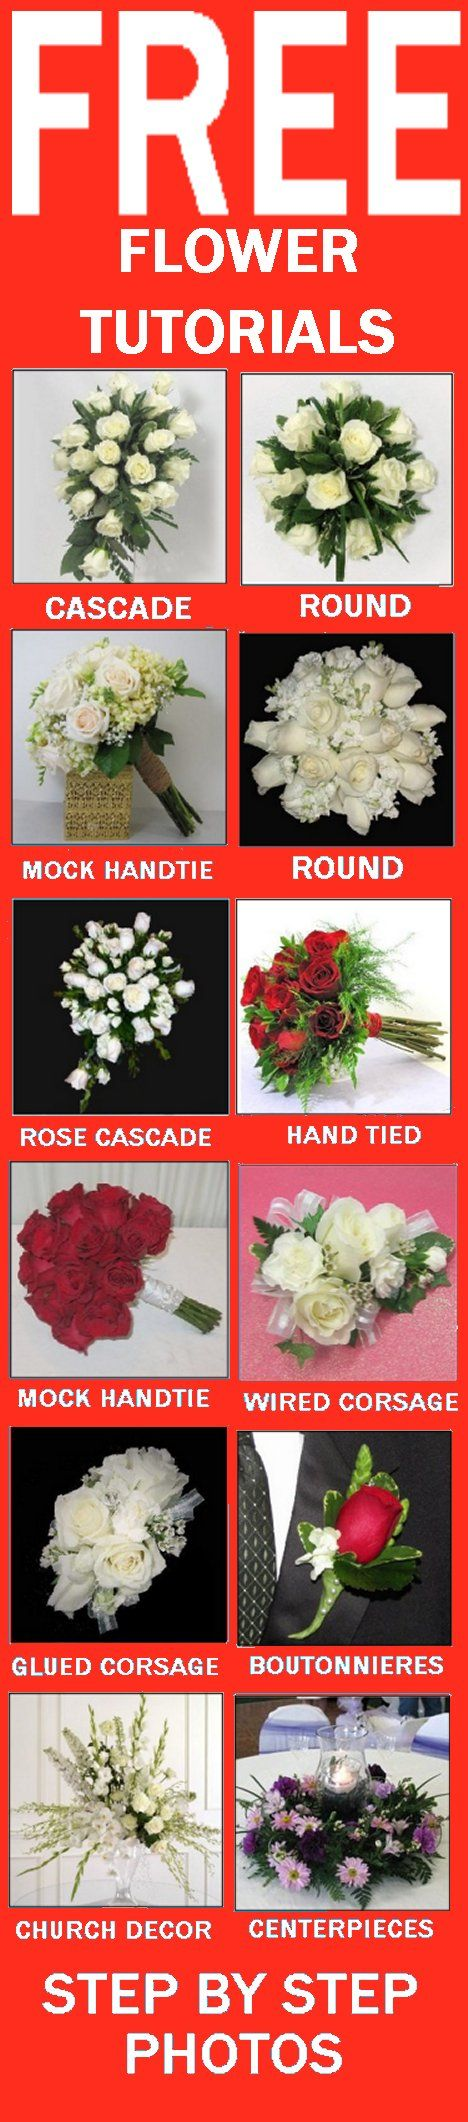 Wedding flower prices can you save by doing it yourself learn how wedding flower prices can you save by doing it yourself learn how to make bridal bouquets wedding corsages groom boutonnieres church decorations and izmirmasajfo